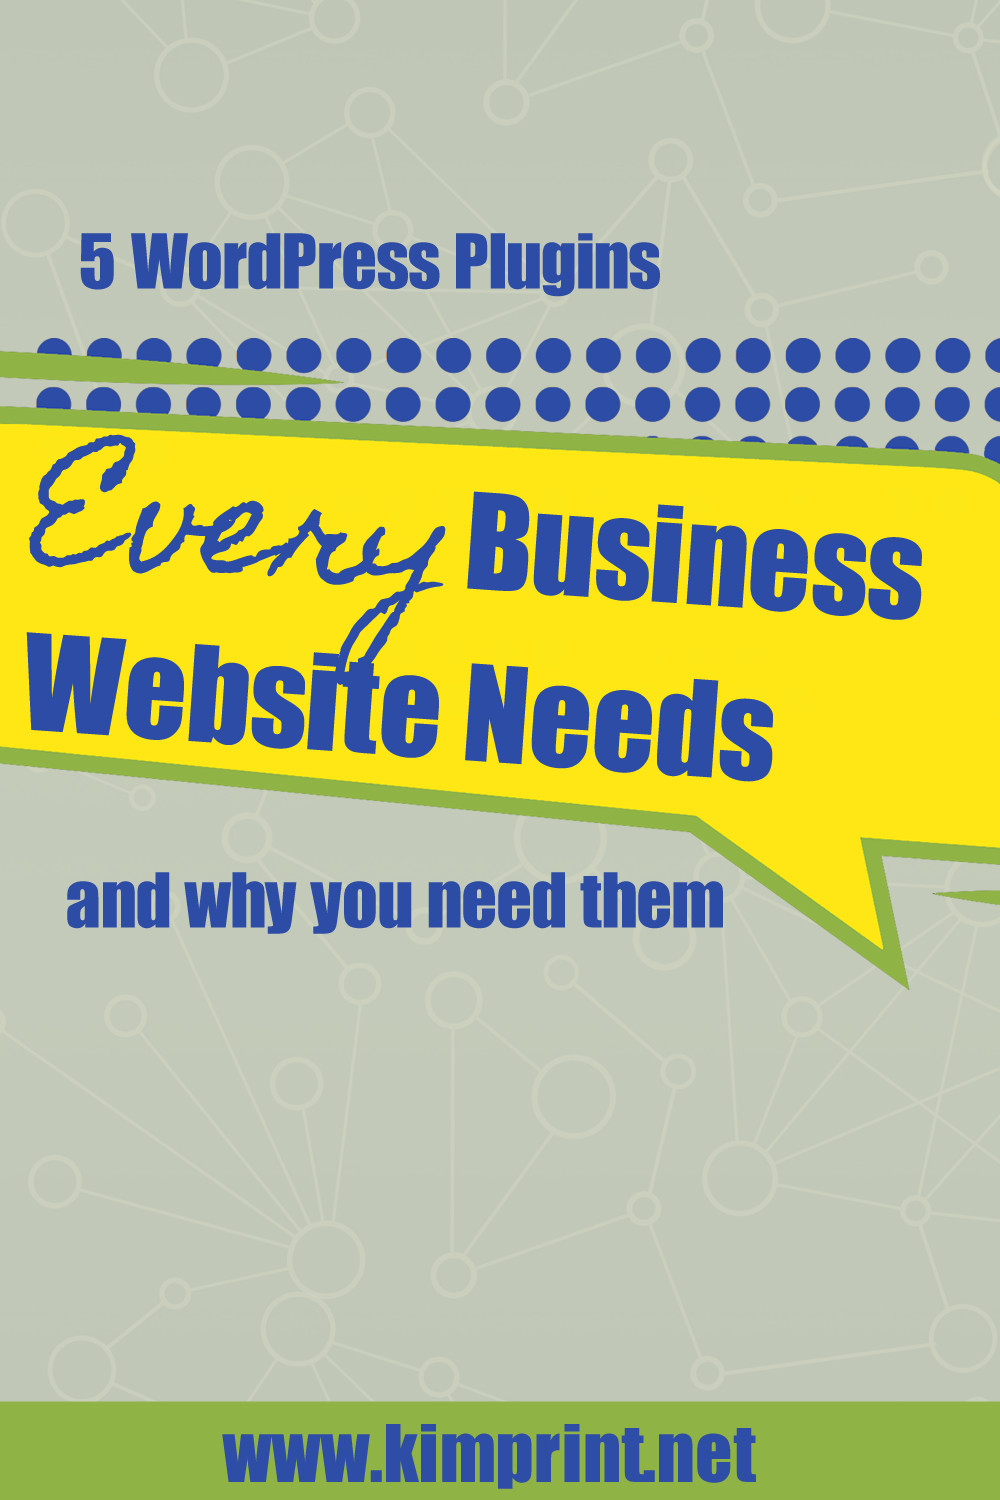 wordpress plugins for business coaching websites and small business websites